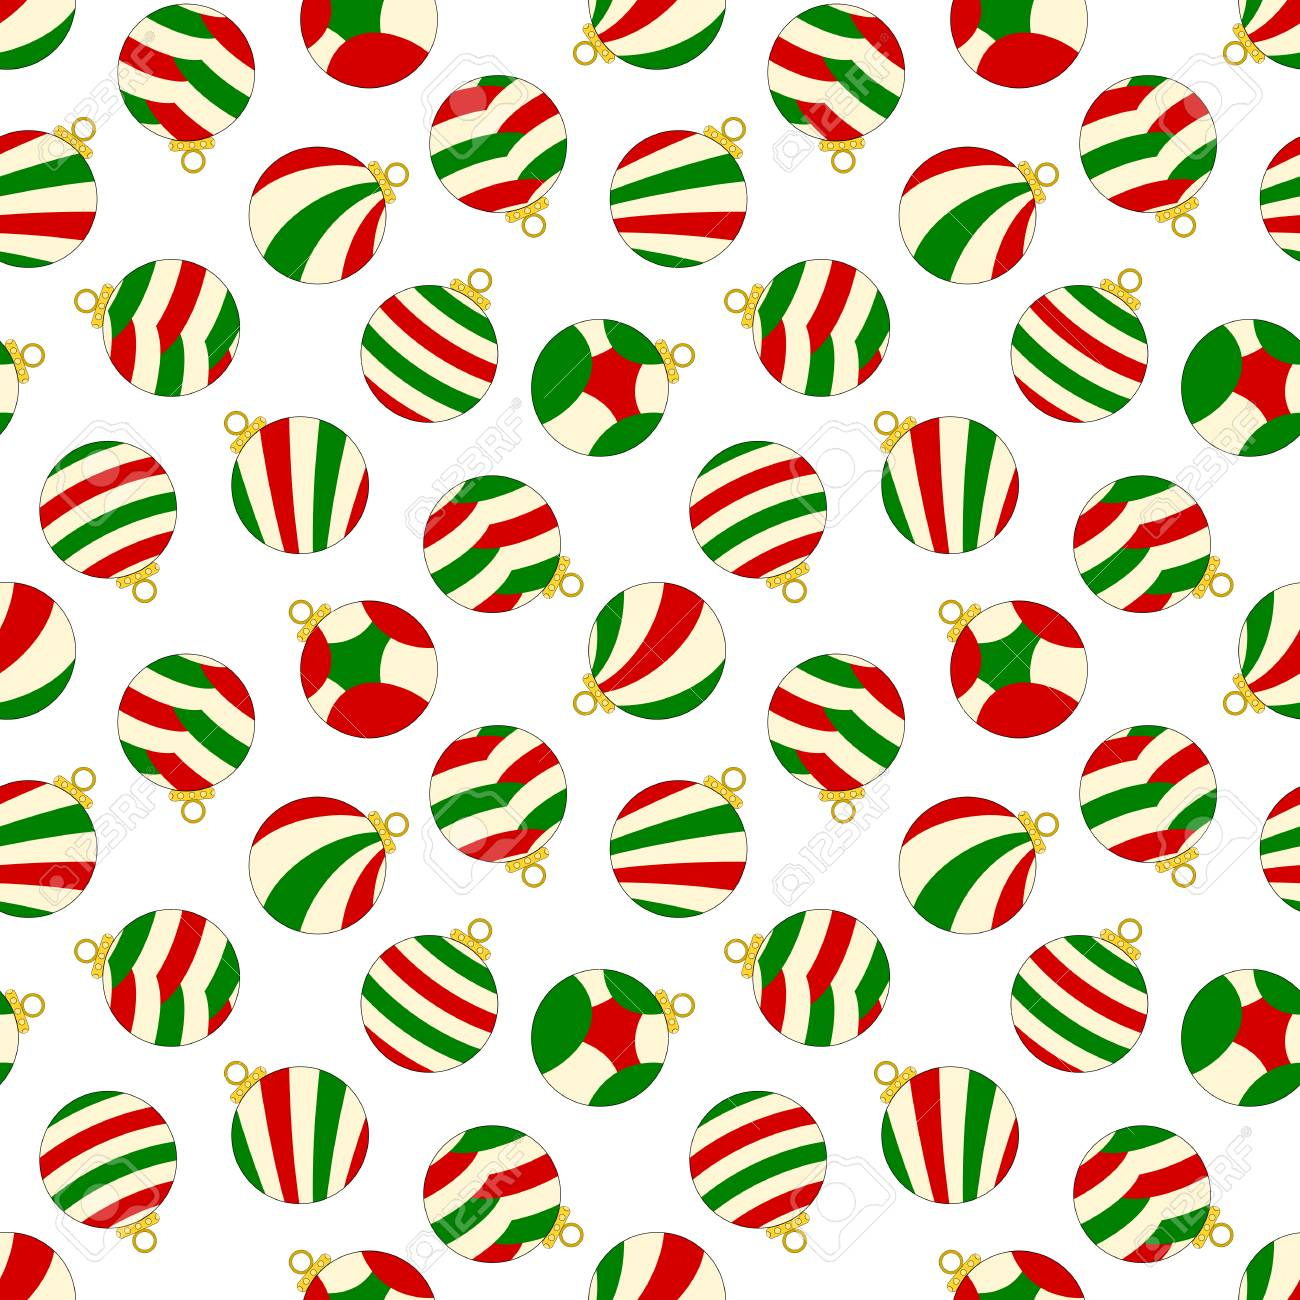 Seamless Patterns Click here to see the full collection! Christmas Ornaments